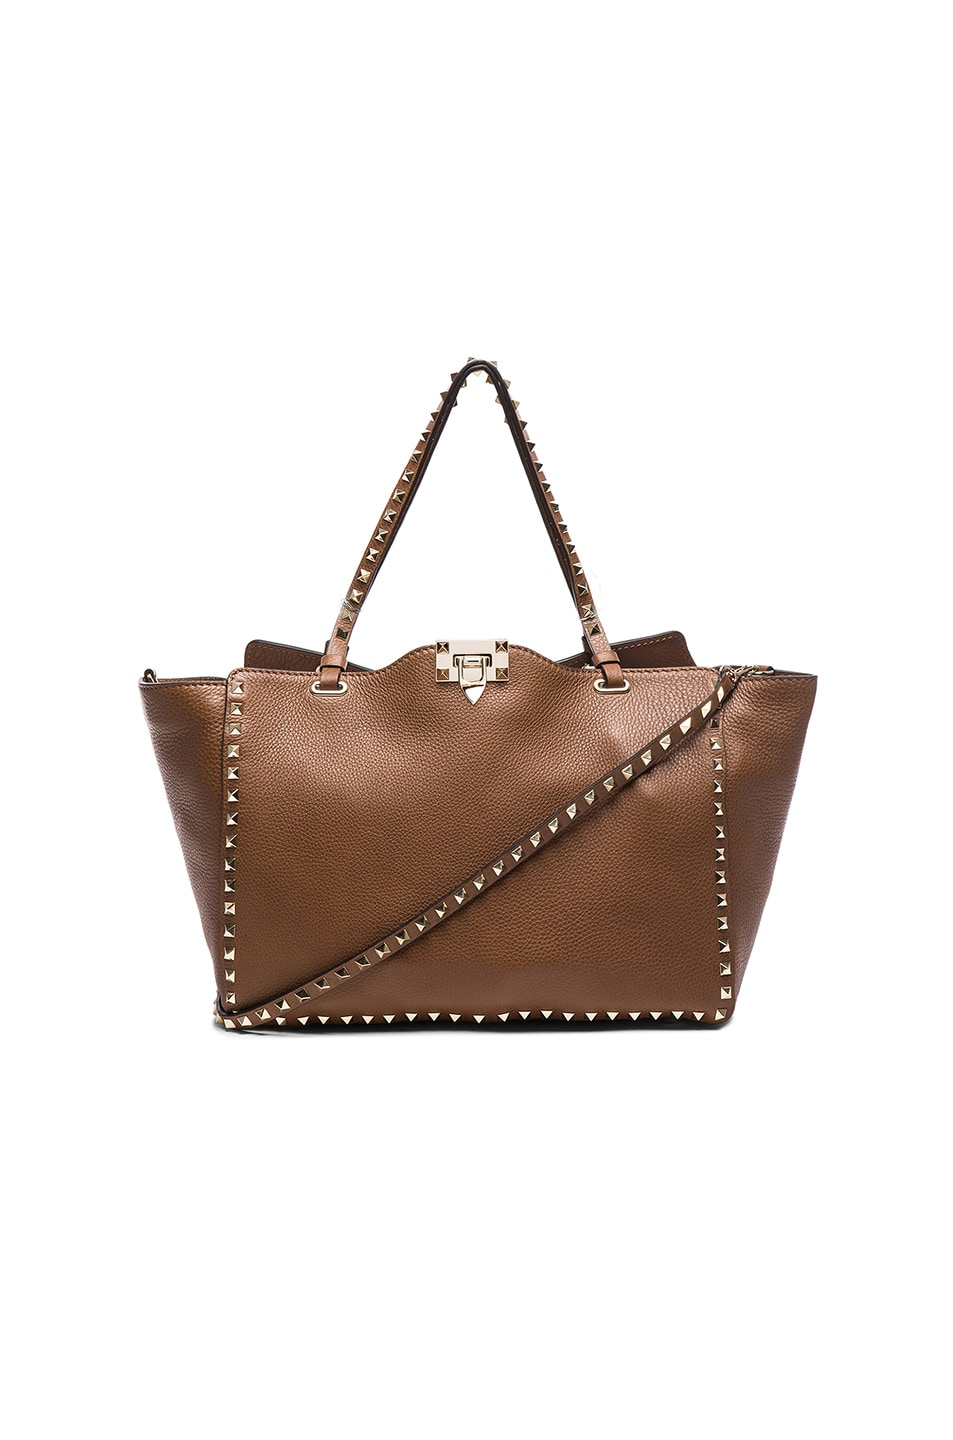 Image 1 of Valentino Rockstud Medium Rockstud Crossbody Tote in Deep Cuir